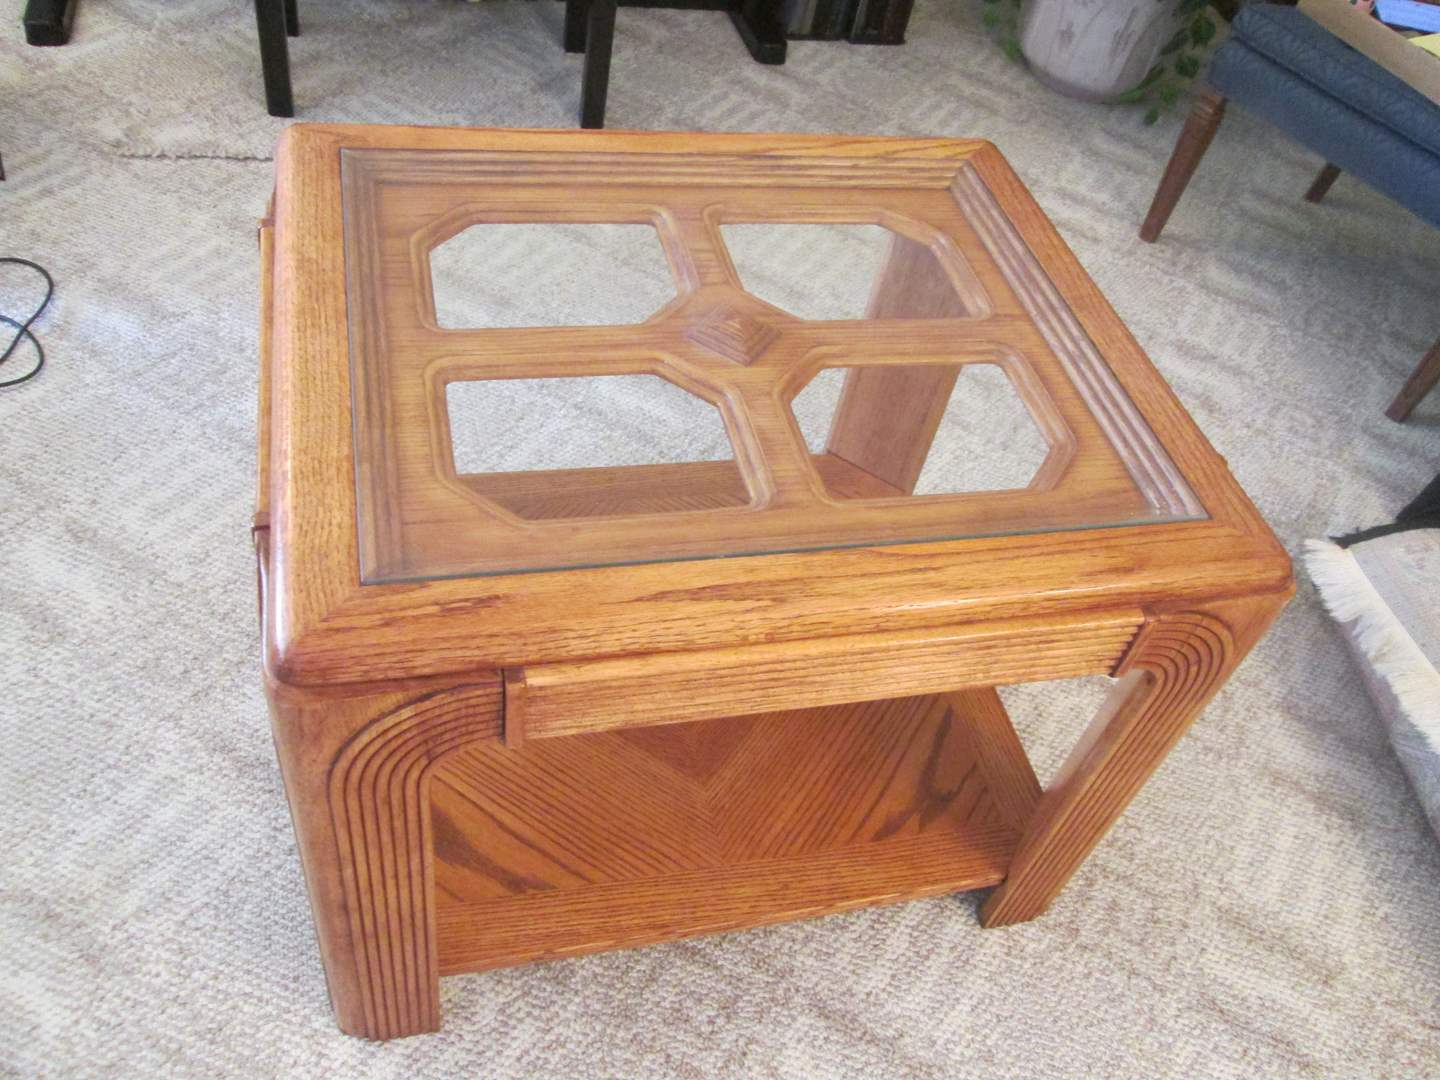 Lot # 76 - End Table with Glass Inserts (main image)